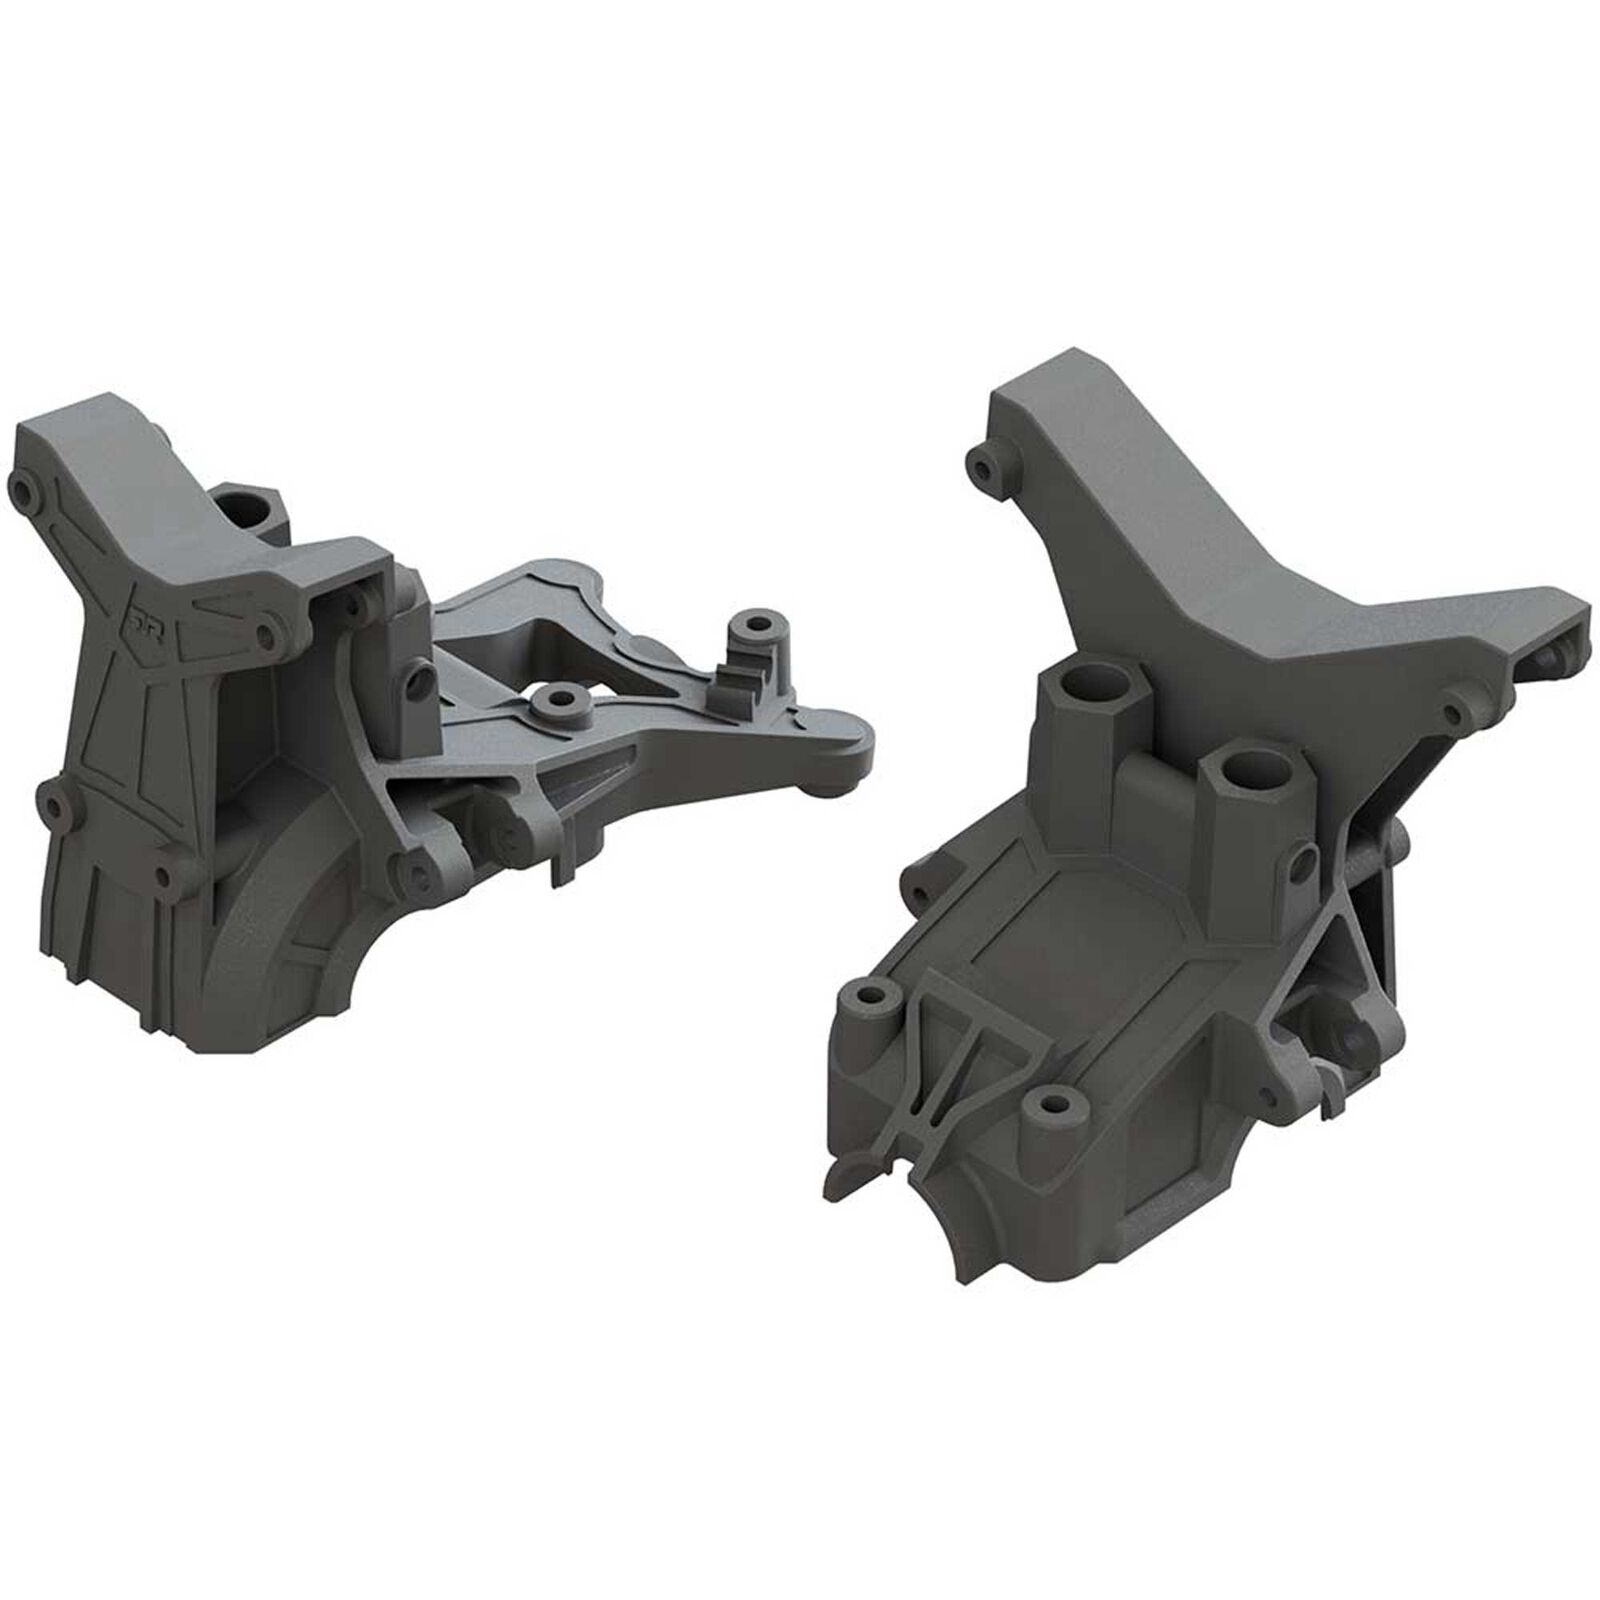 Composite Front Rear Upper Gearbox Covers and Shock Tower